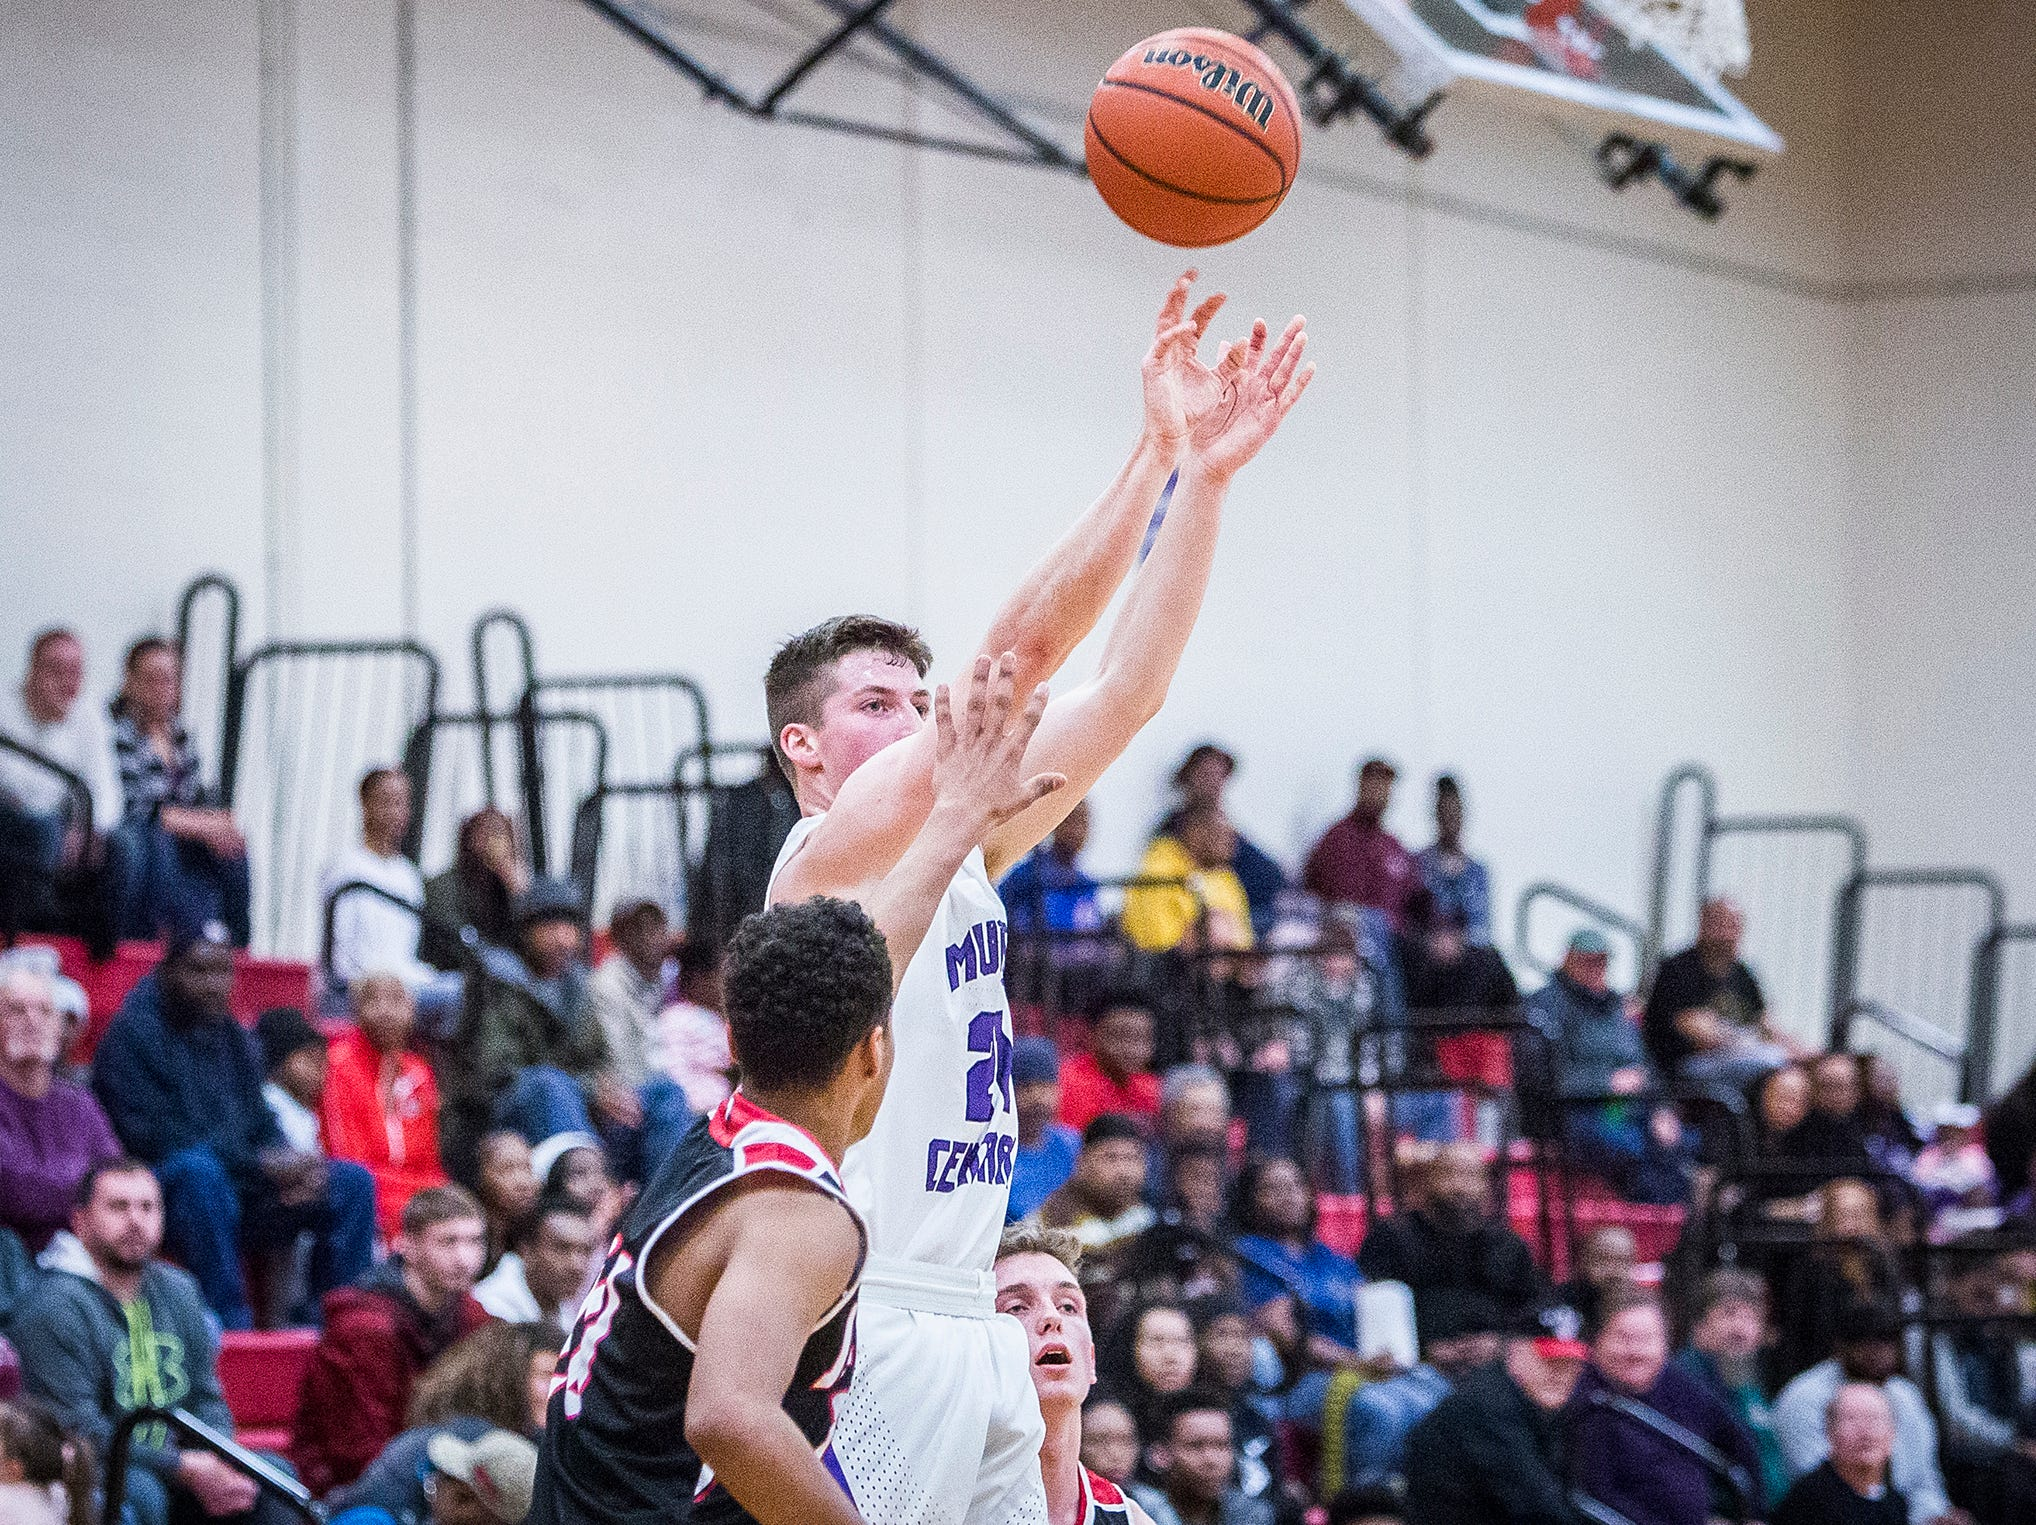 Central's Dylan Stafford shoots against Lafayette Jefferson during their game at Southside Middle School Friday, Jan. 4, 2019.